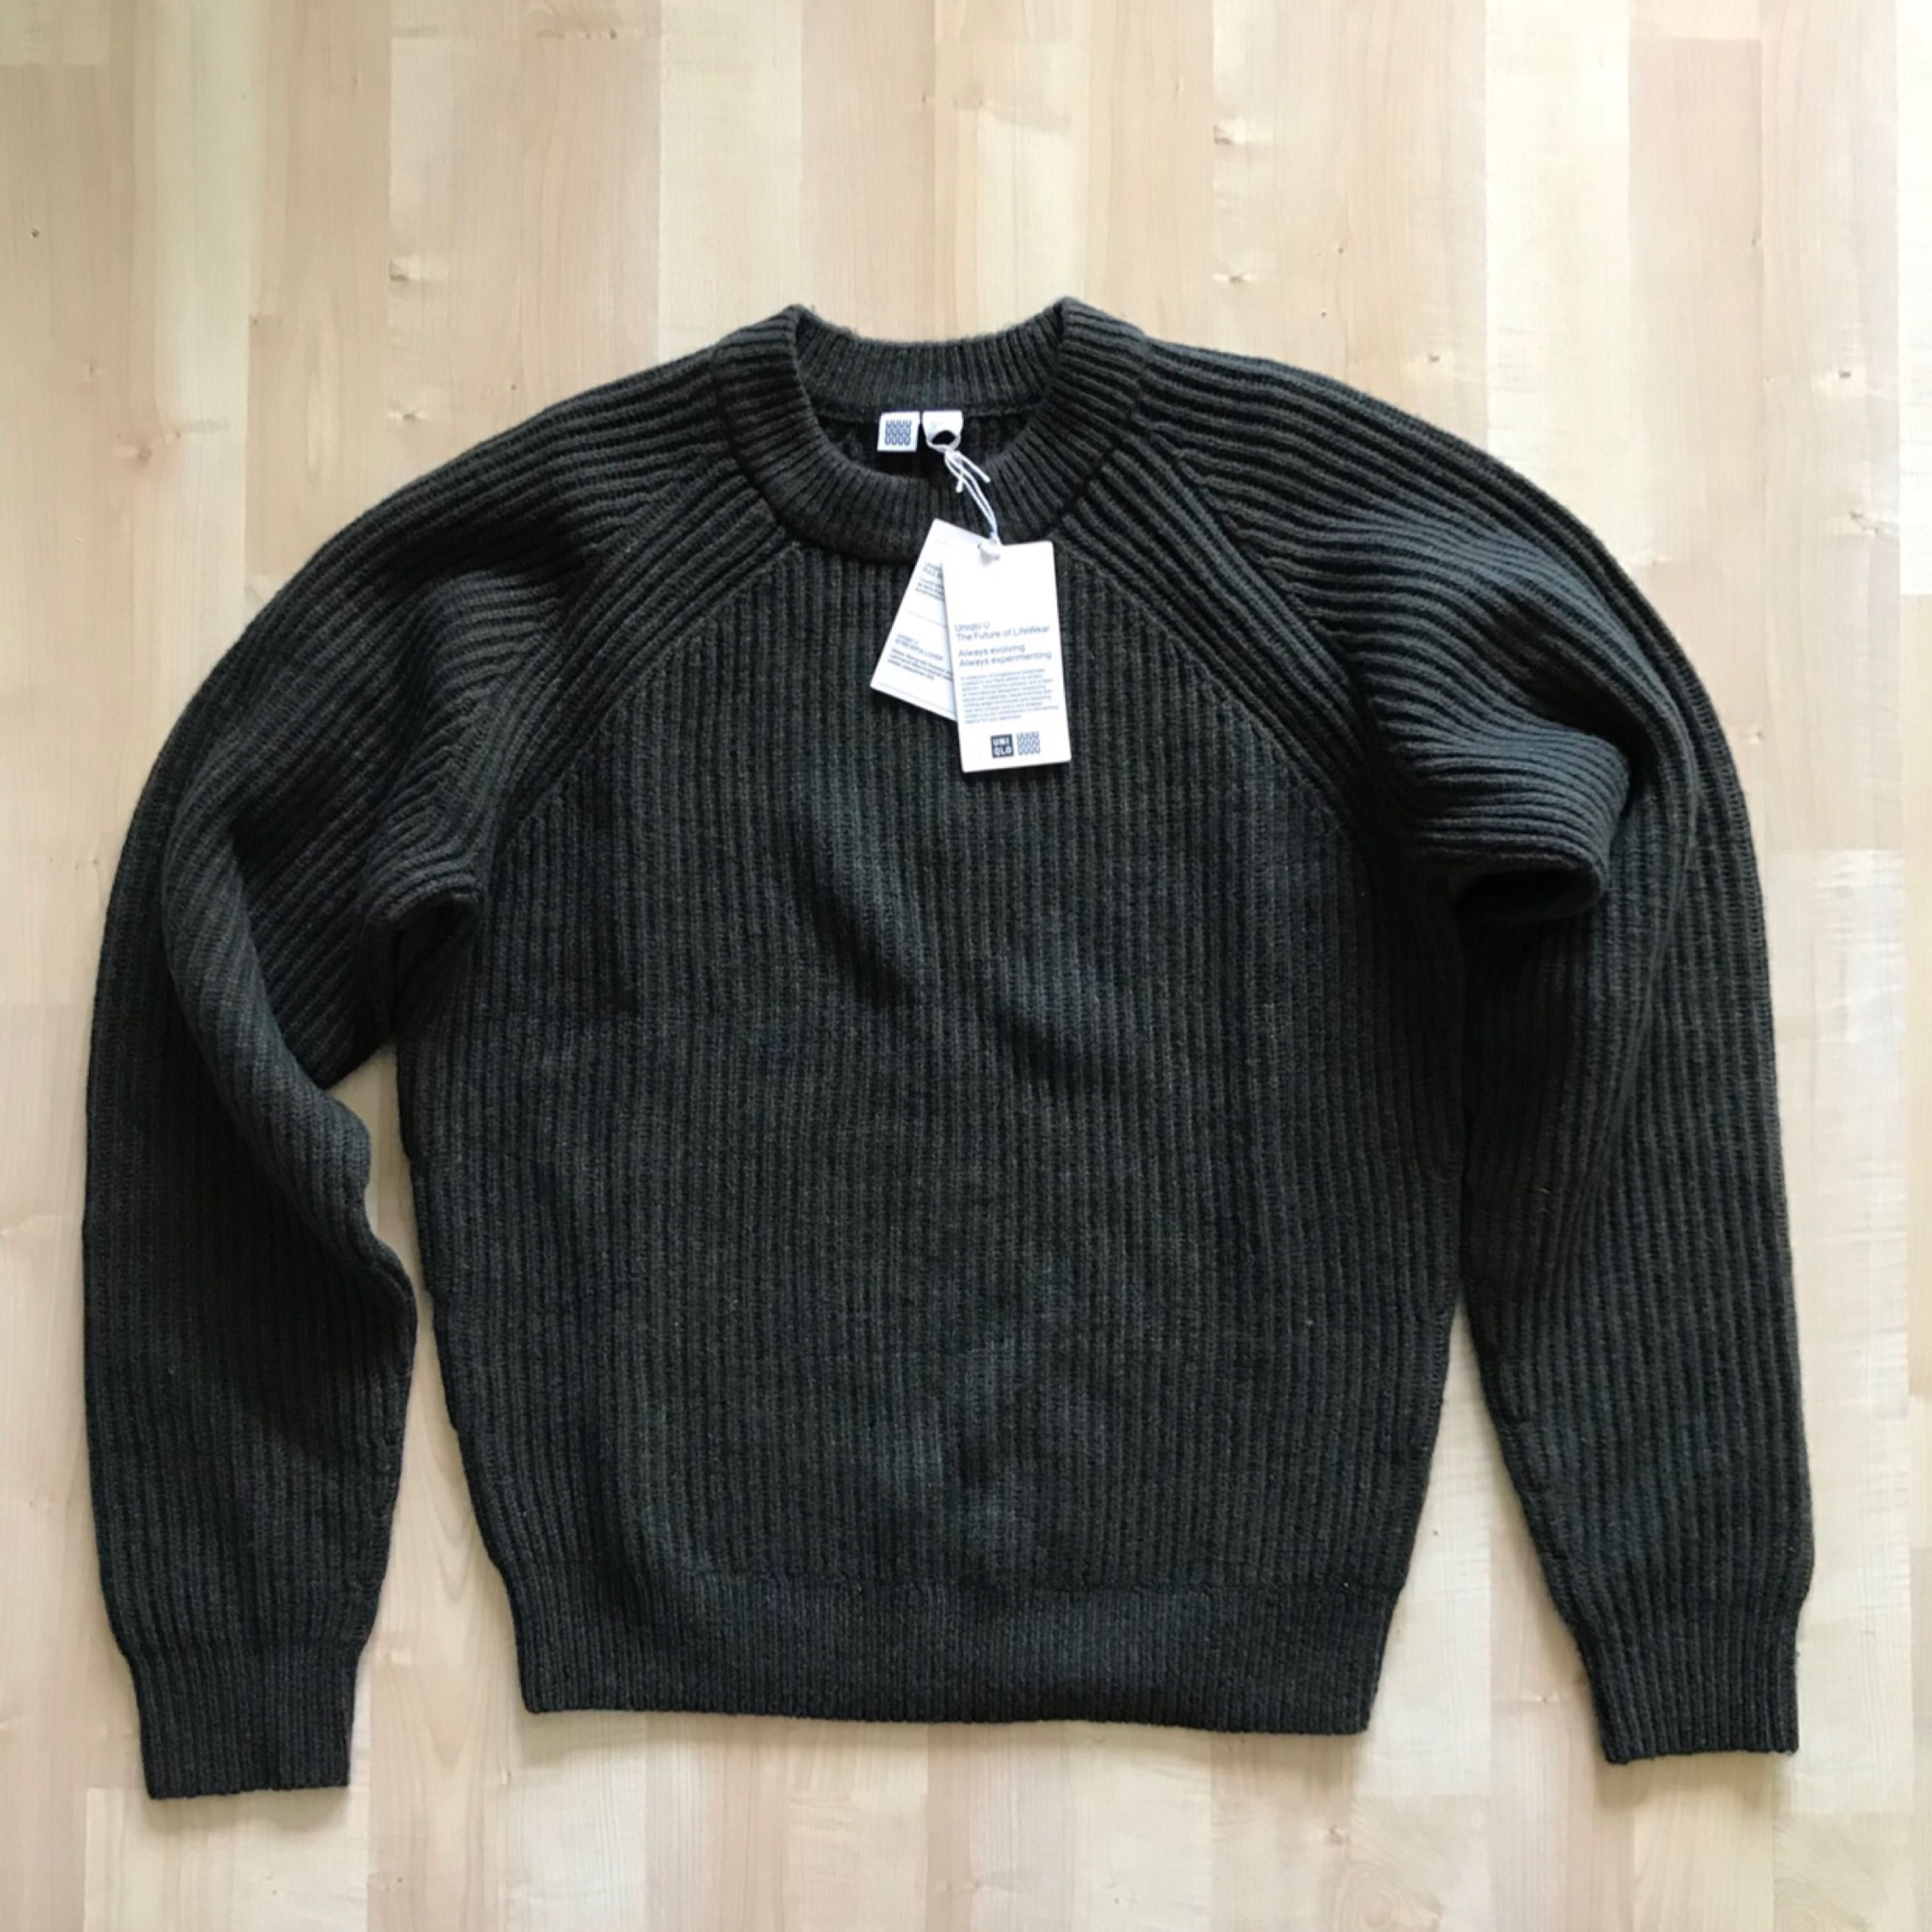 Brand New with tags, Uniqlo U stickat/knitwear jumper in collaboration with famous french designer Christopher Lemaire. Limited edition in lambswool material.  Size is XS but really fits an S size for someone between 170cm to 180cm.   Dark military green in colour.  Bought in Tokyo, Japan.. Stickat.